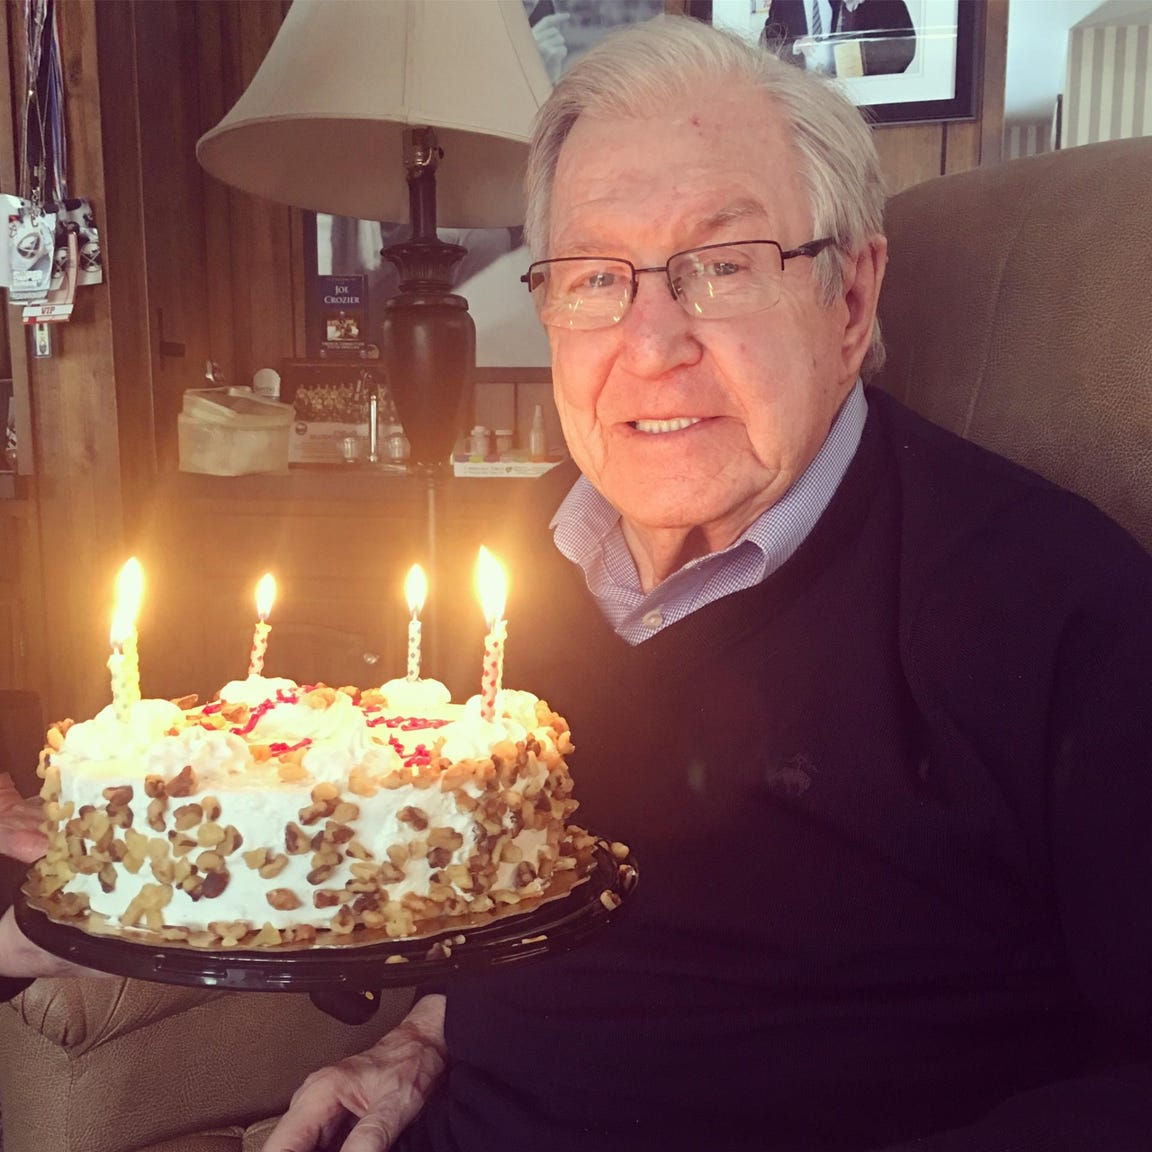 Joe Crozier celebrated his 90th birthday on Tuesday, Feb. 19 at his home in Amherst, Erie County. Crozier coached the Rochester Amerks to three Calder Cup championships in the 1960s.